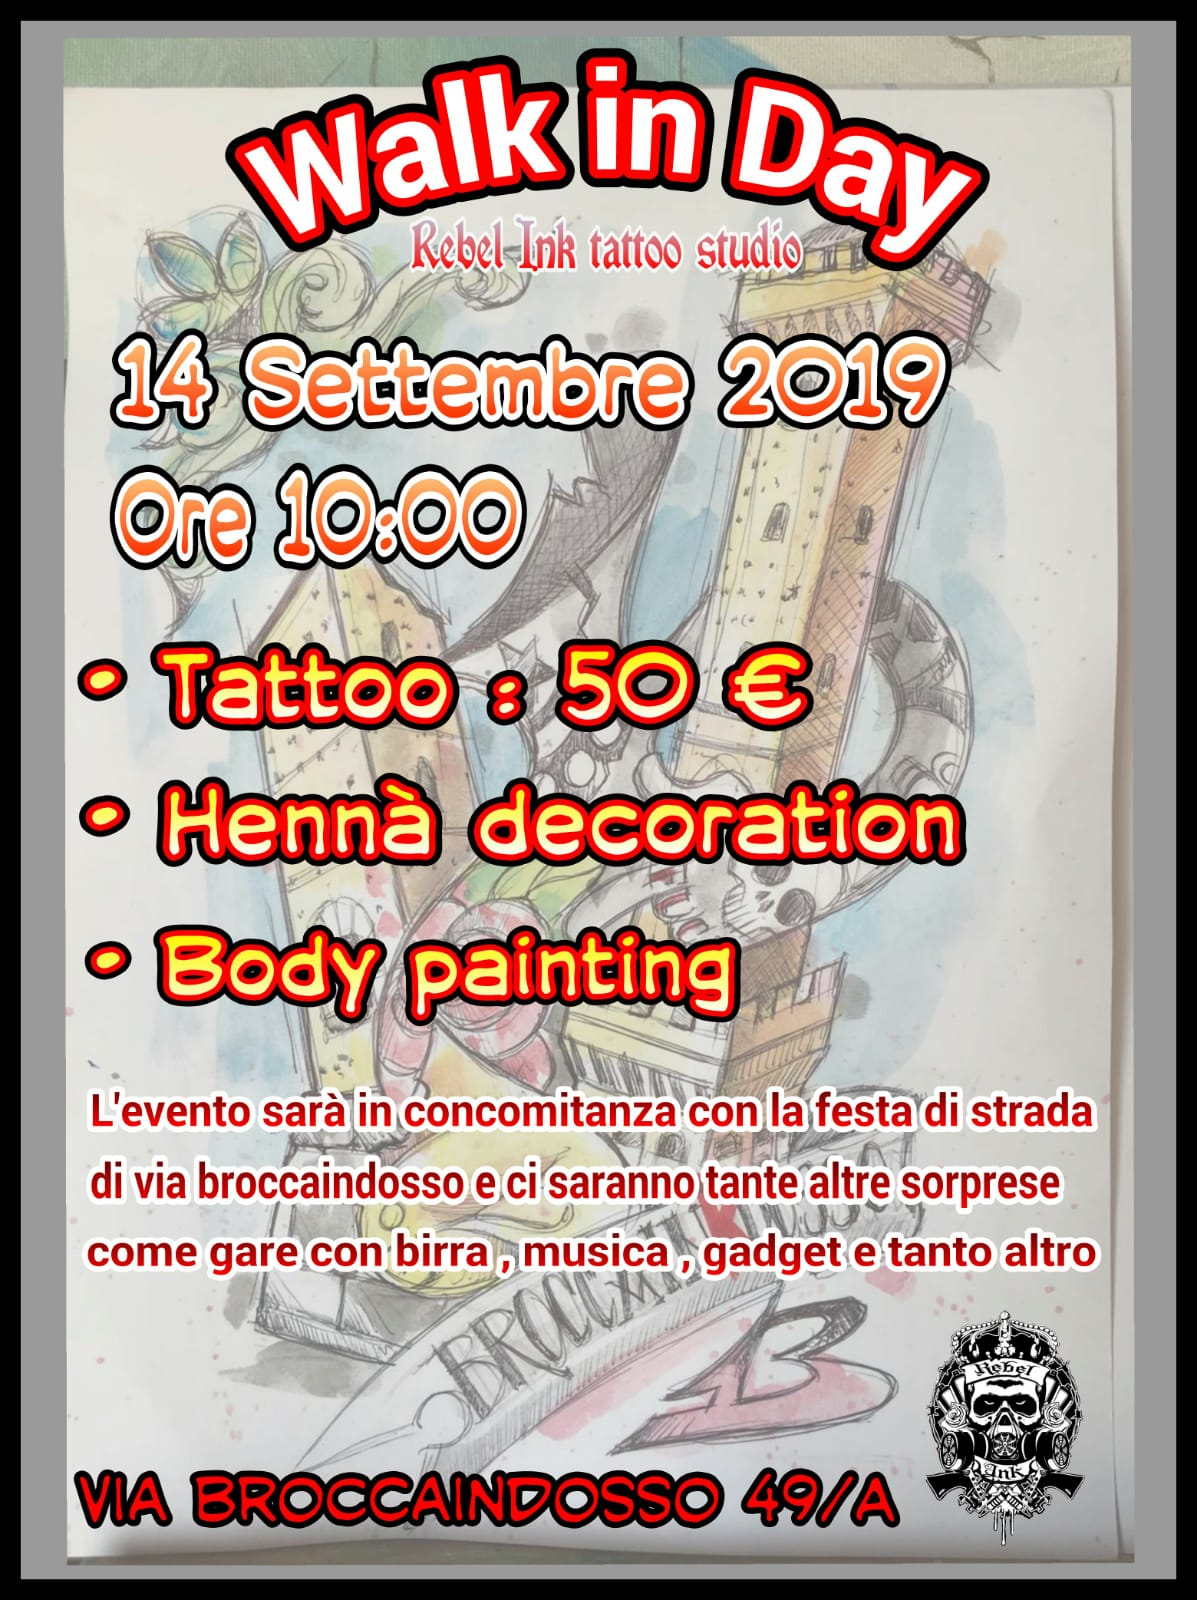 BROCCA-INK DOSSO DAY 2019